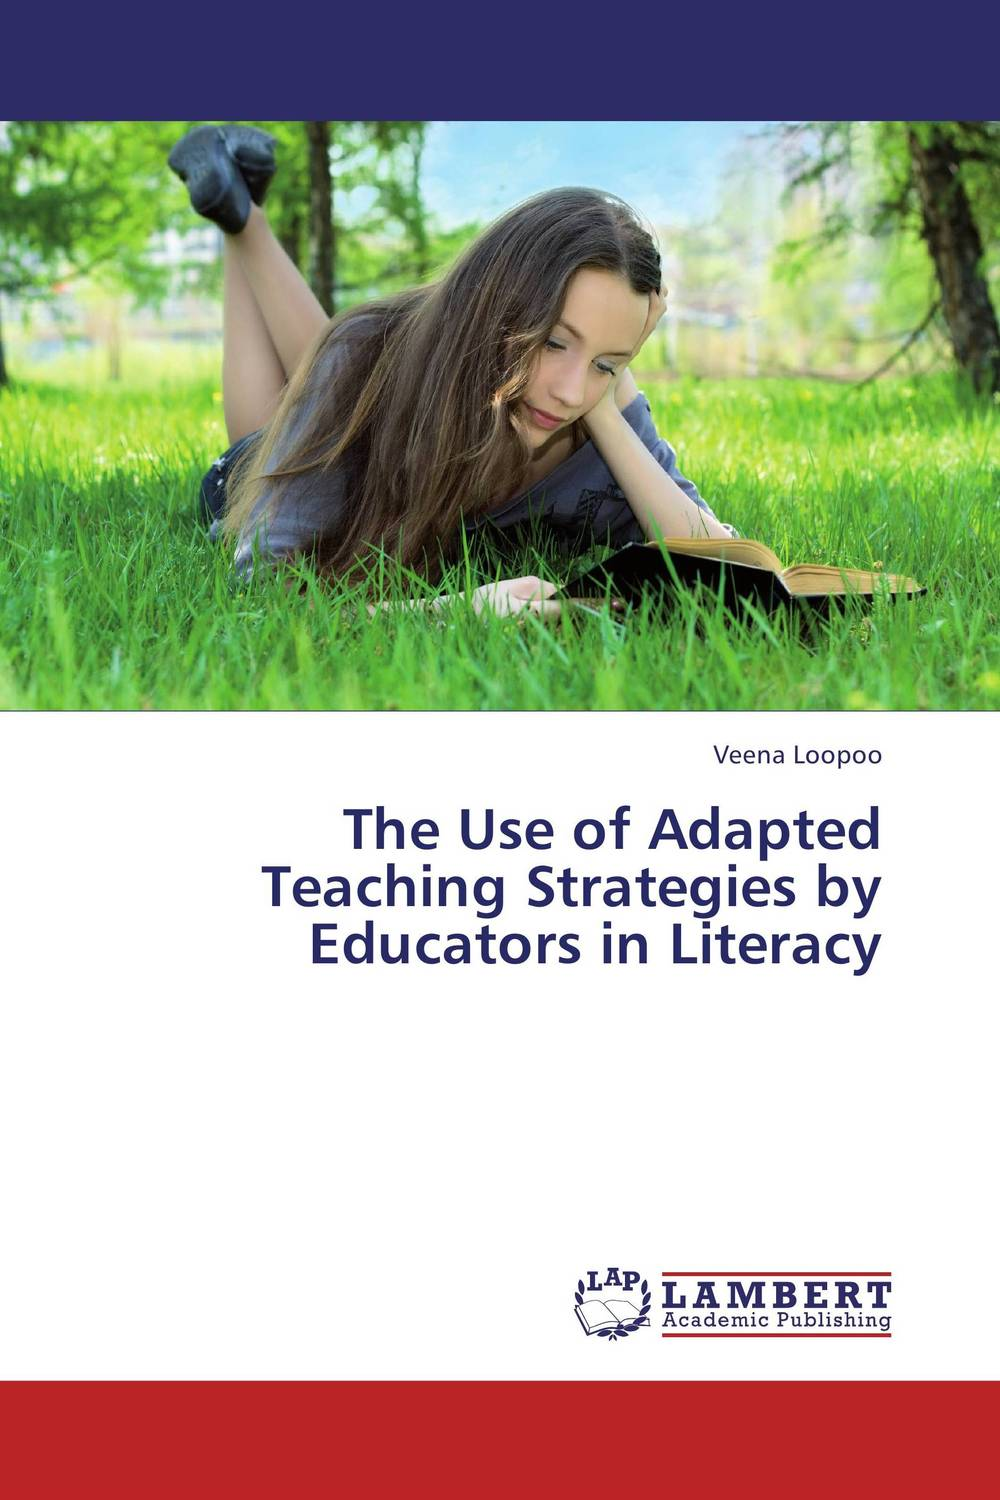 The Use of Adapted Teaching Strategies by Educators in Literacy katherine mcknight s common core literacy for ela history social studies and the humanities strategies to deepen content knowledge grades 6 12